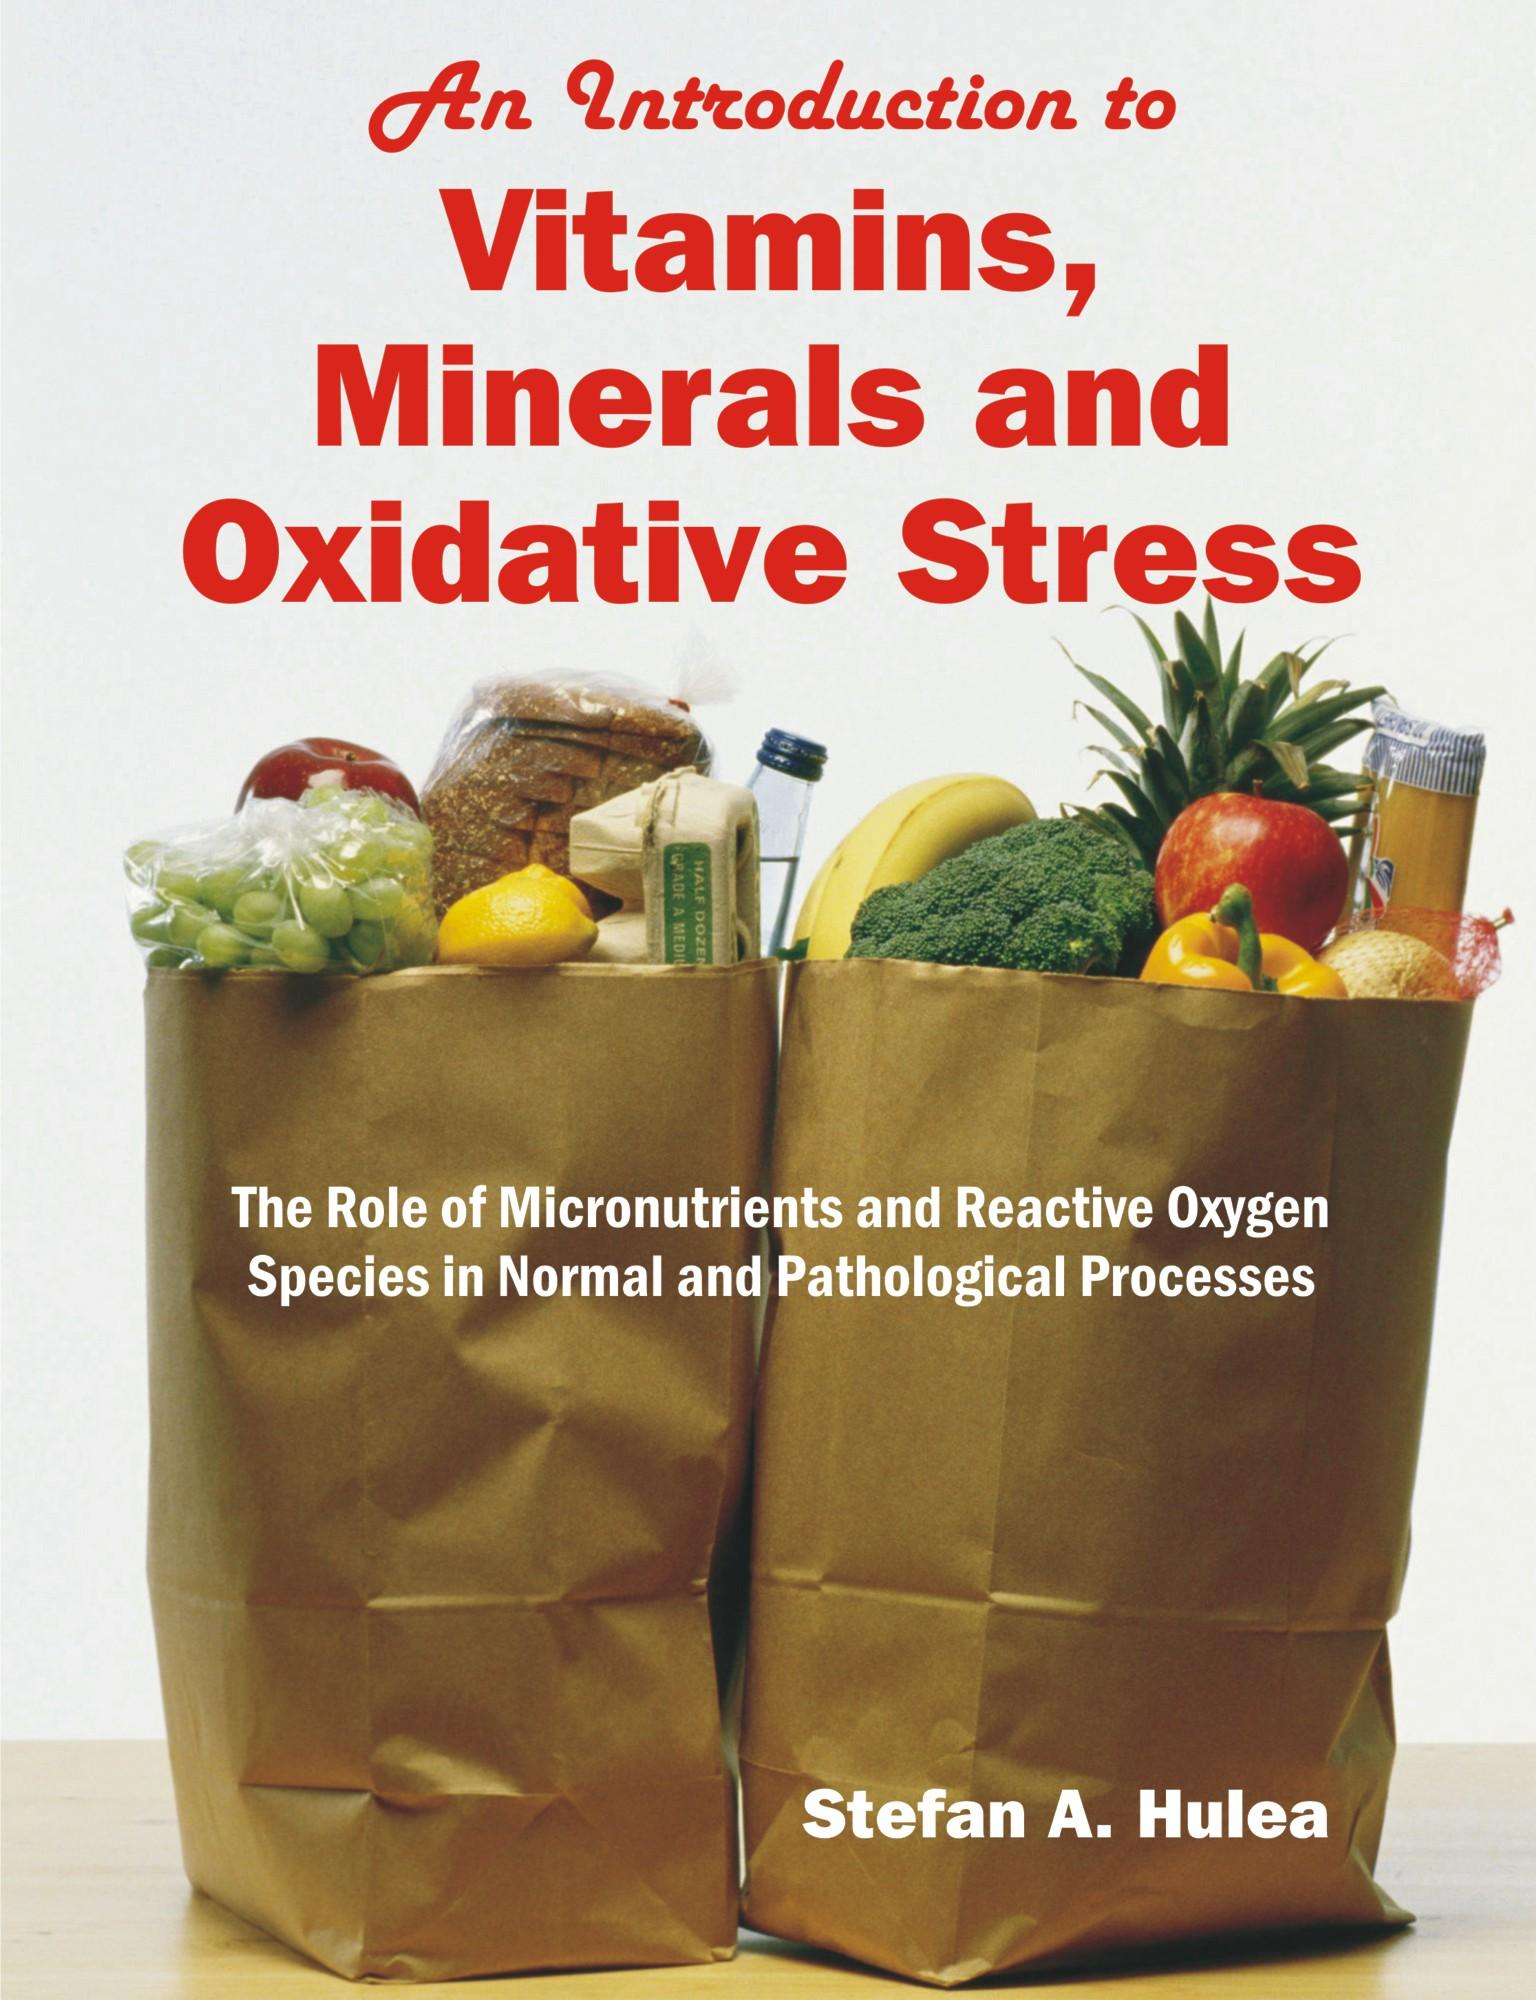 An Introduction to Vitamins, Minerals and Oxidative Stress: The Role of Micronutrients and Reactive Oxygen Species in Normal and Pathological Processe EB9781599429458